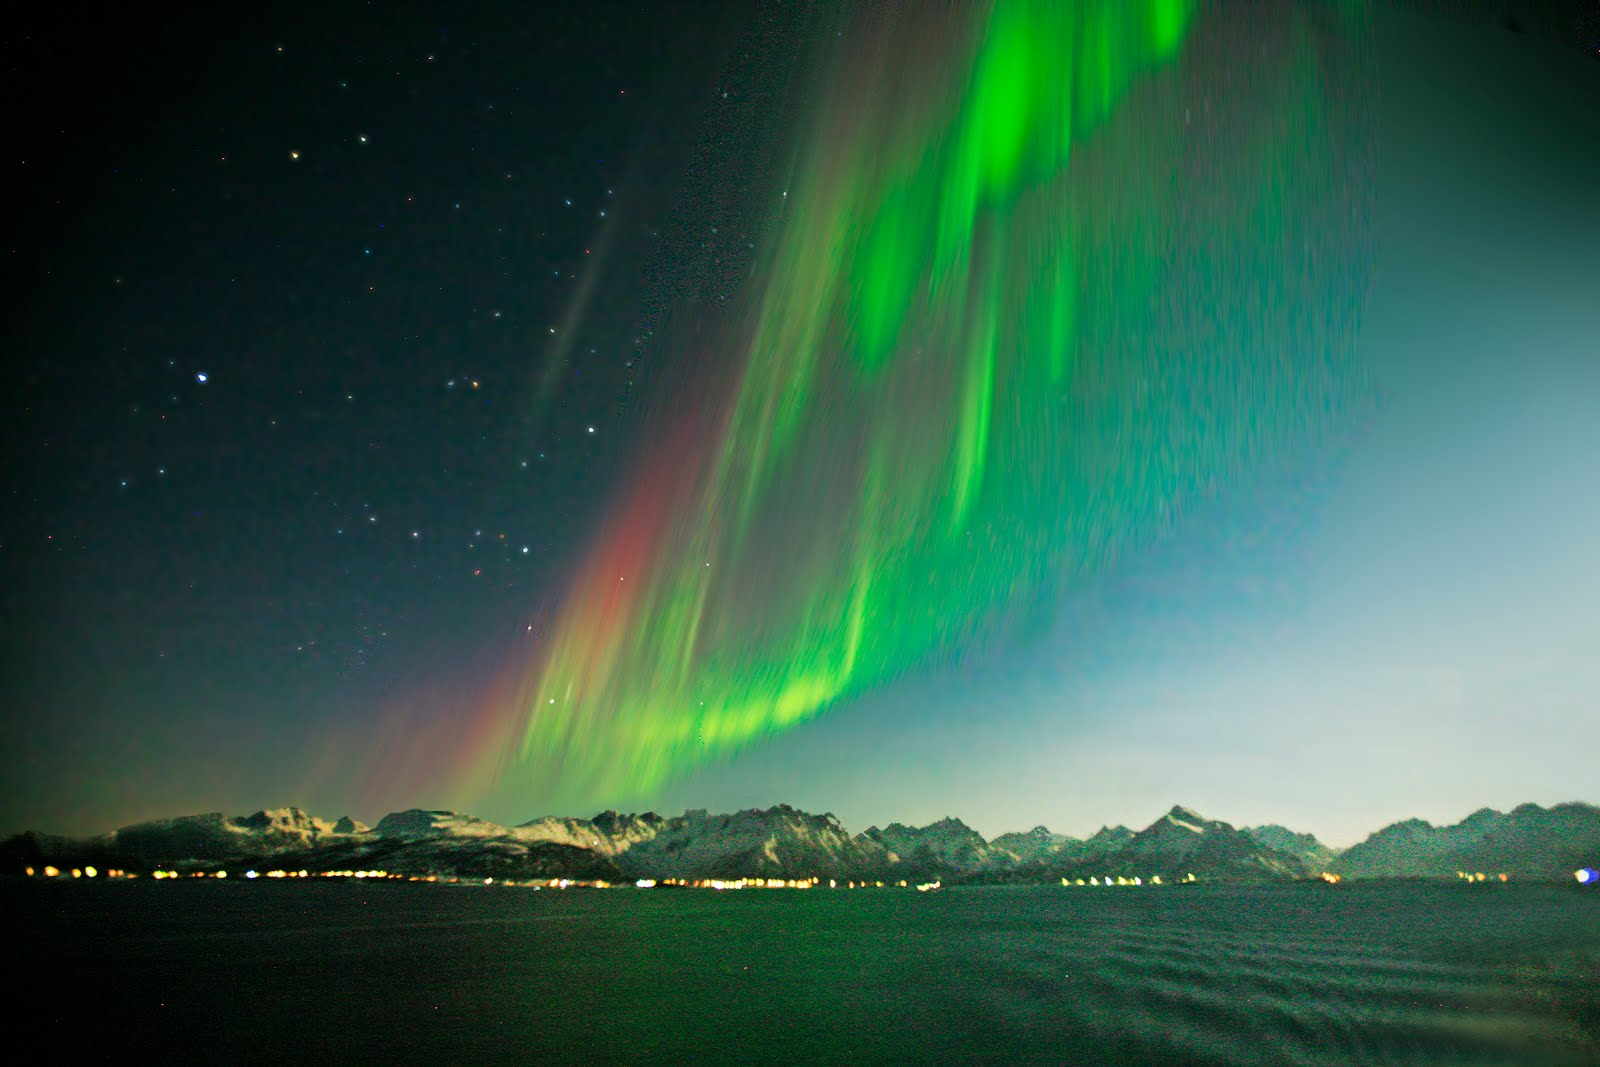 Auroras... Northern lights... in Norway